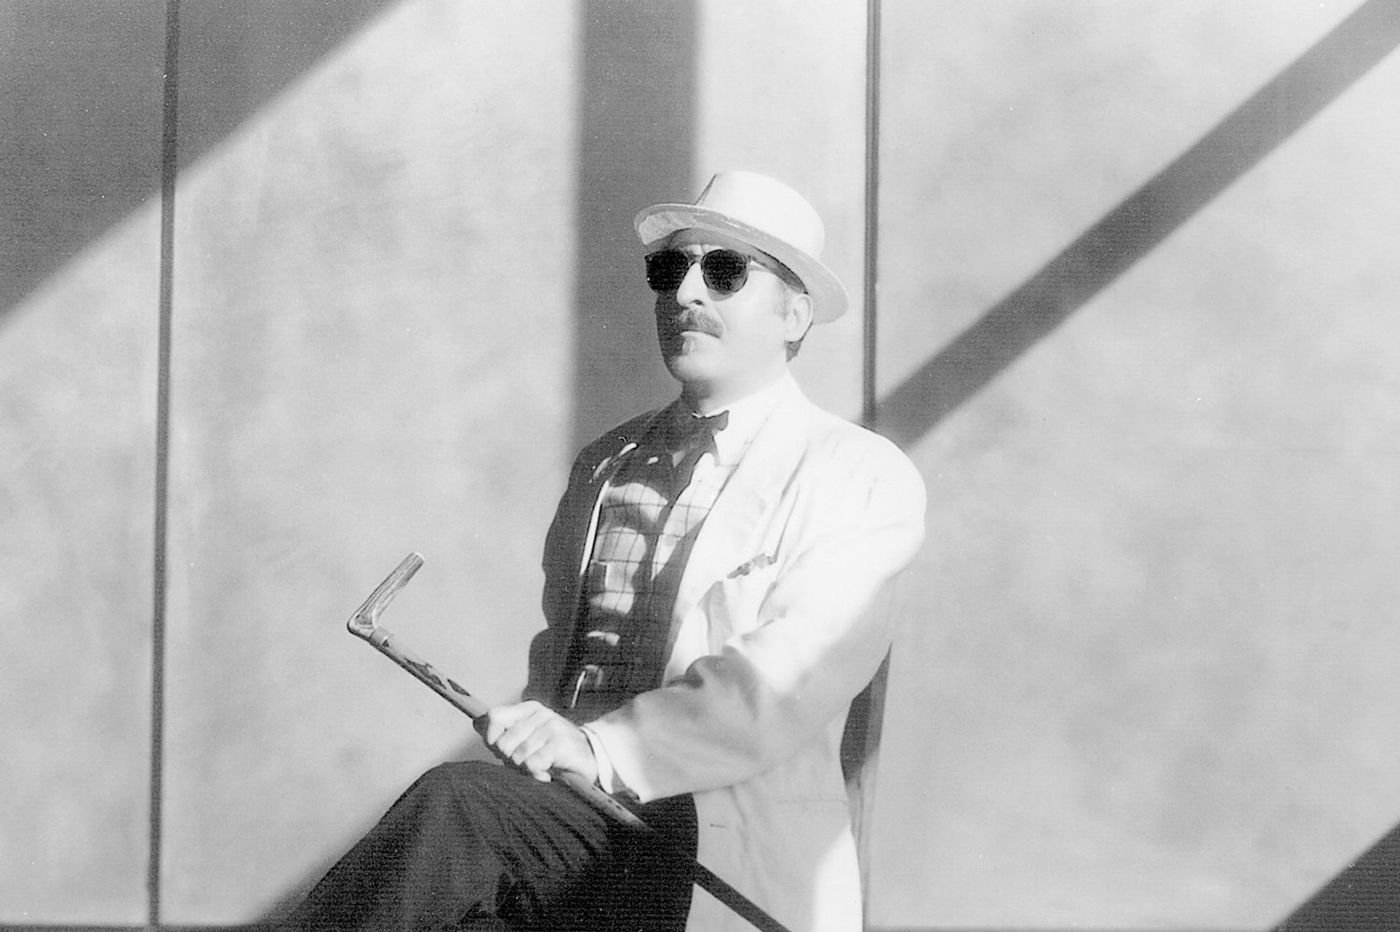 Leon Redbone, acclaimed 1970s singer and guitarist, dies